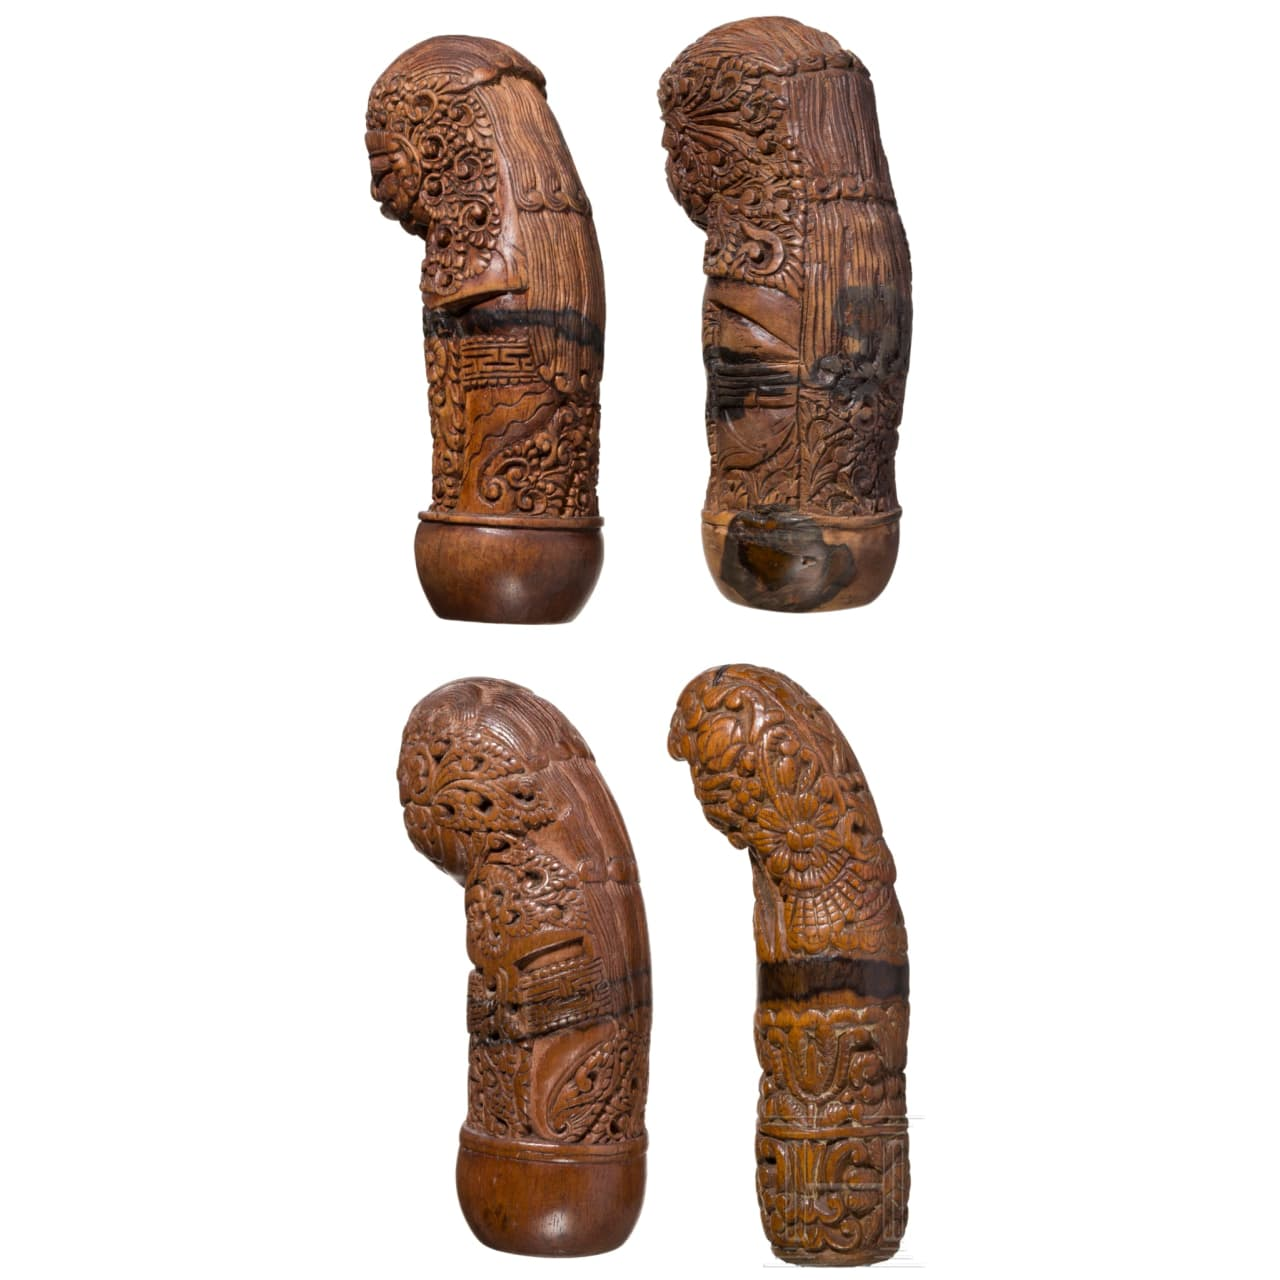 Four carved wooden kris hilts, Java and Madura, ca. 1900